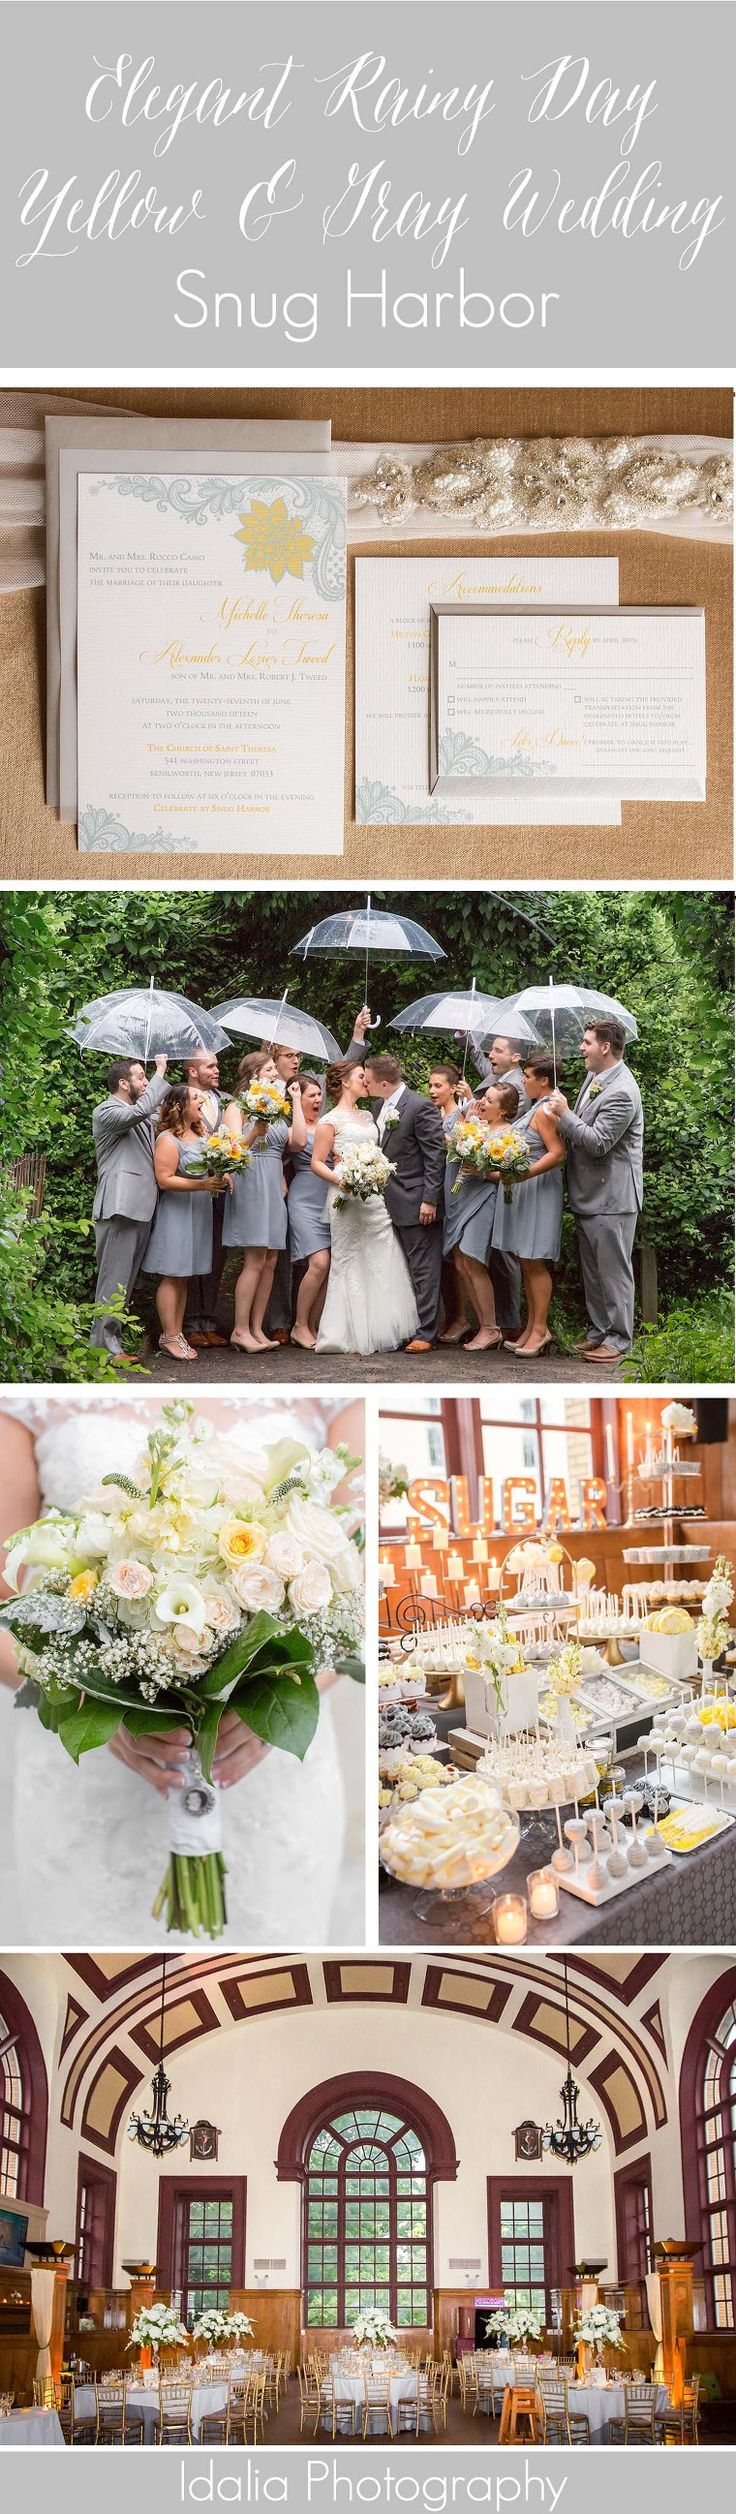 Elegant Rainy Yellow and Gray Wedding at Snug Harbor in Staten Island, NY | Yellow and Gray Wedding | Yellow and Gray Sweets Bar